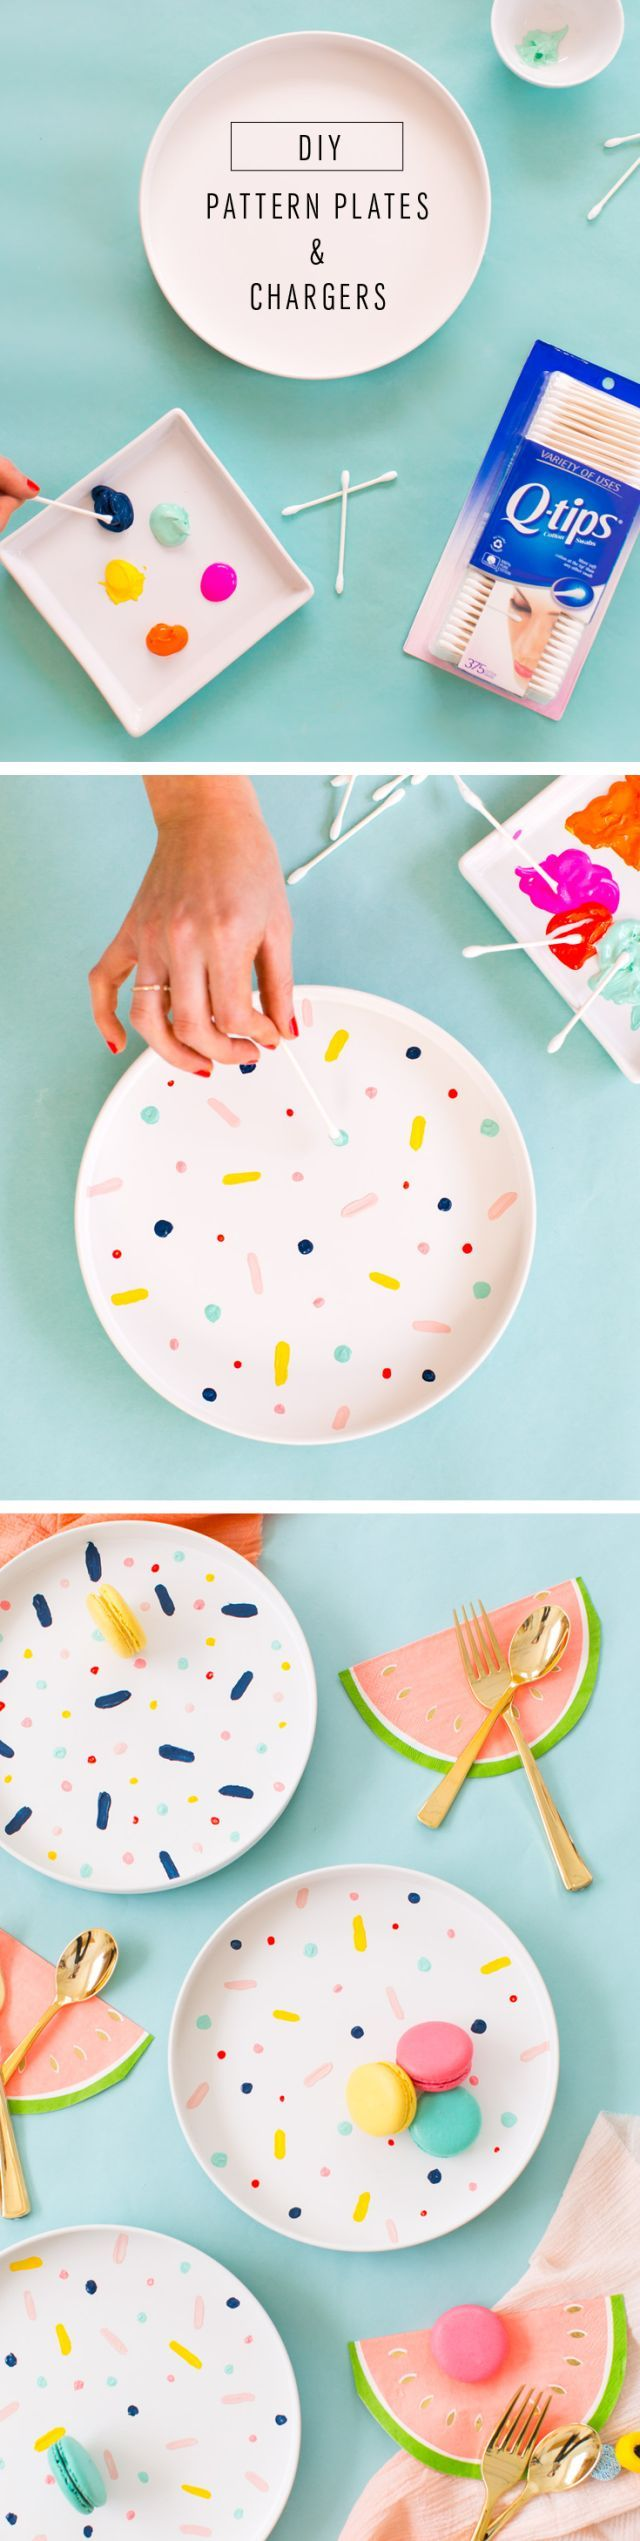 The perfect rainy afternoon craft project, DIY confett pattern placemats and cha...